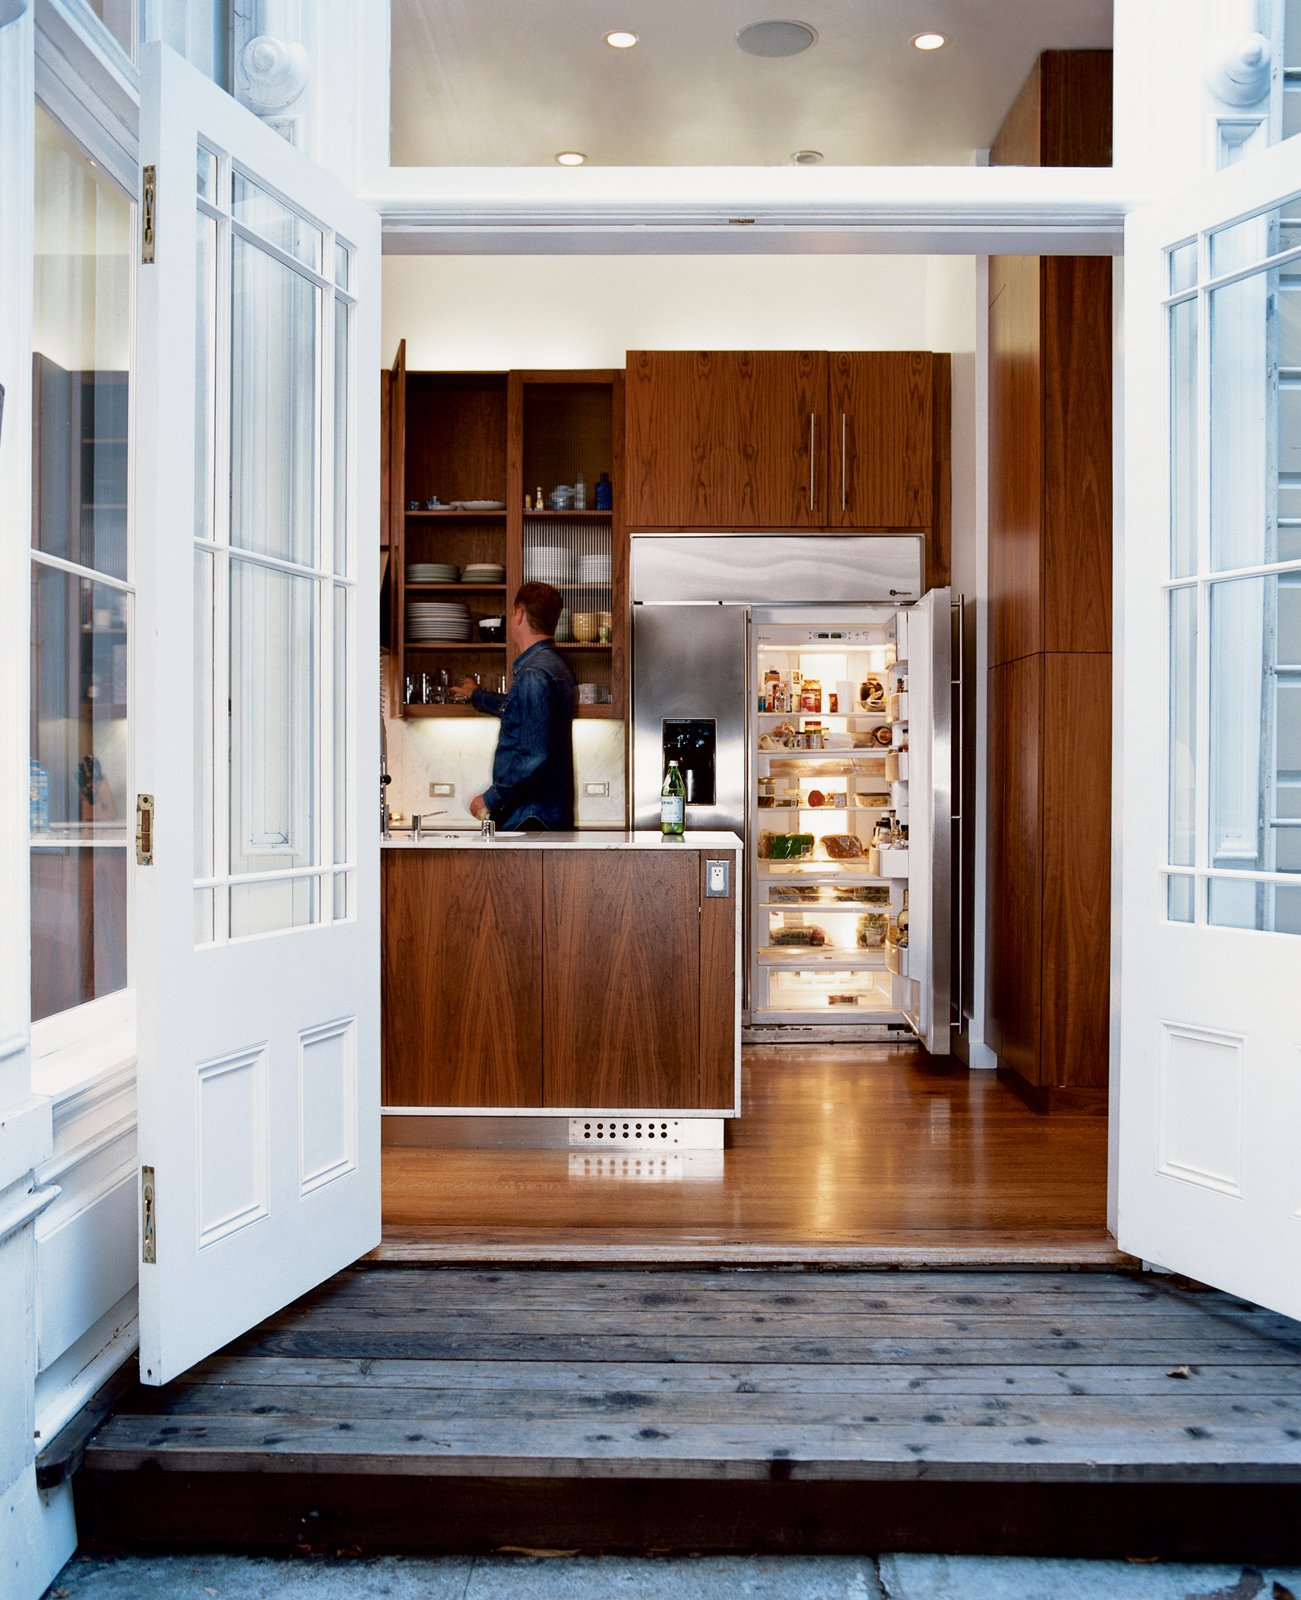 The walnut cabinets in the kitchen, which update and warm the space, were designed by Nilus de Matran and fabricated by George Slack.  Photo 1 of 8 in Taking Liberties